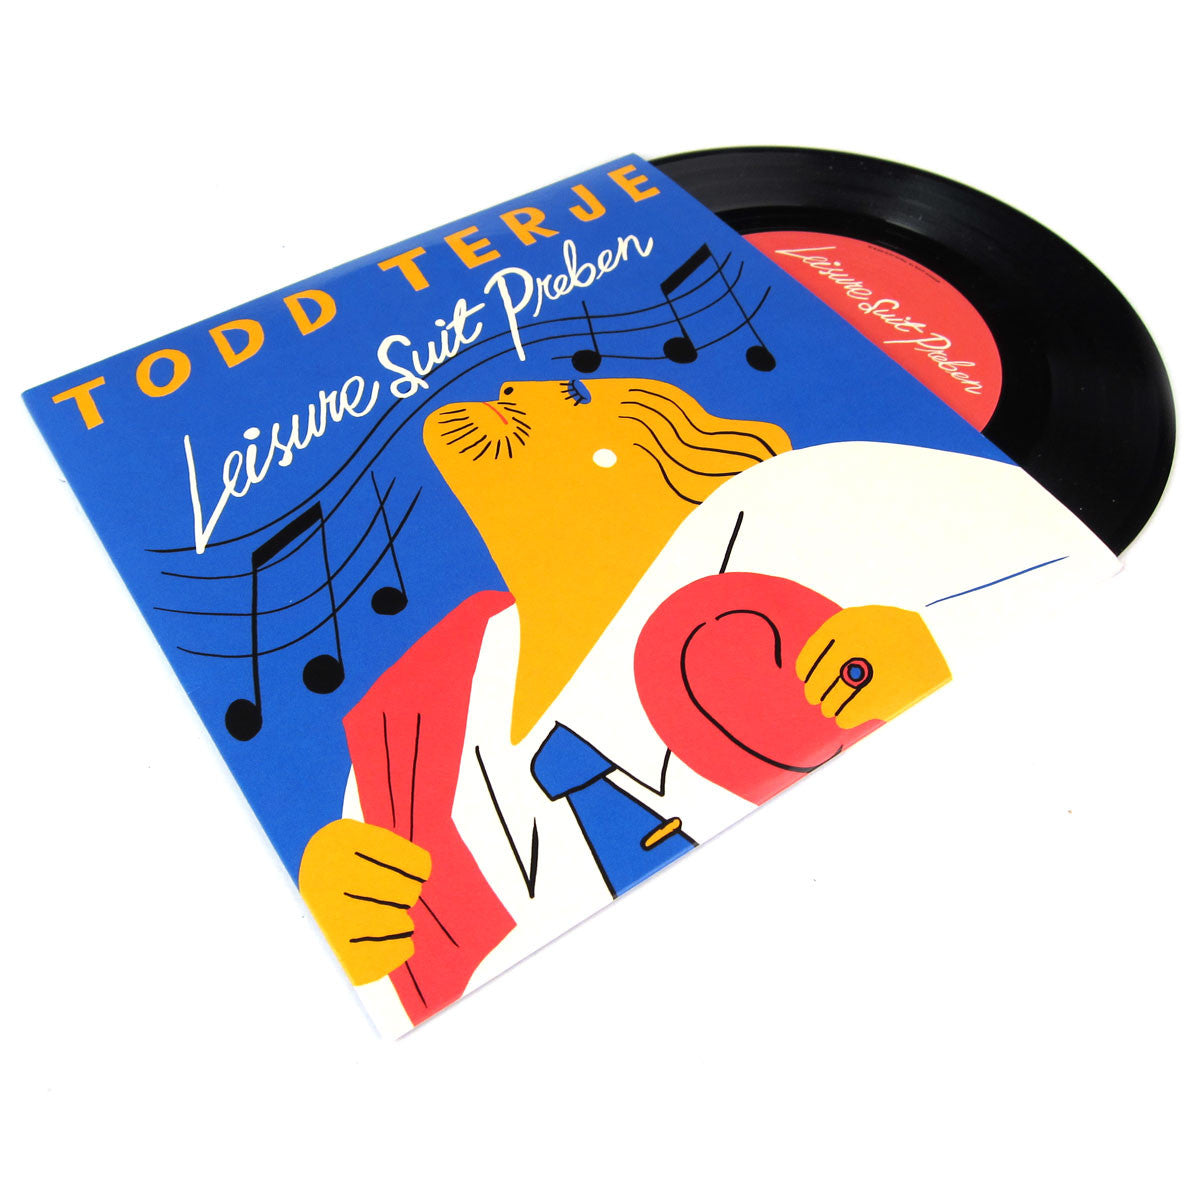 Todd Terje: Leisure Suit Vinyl 7""